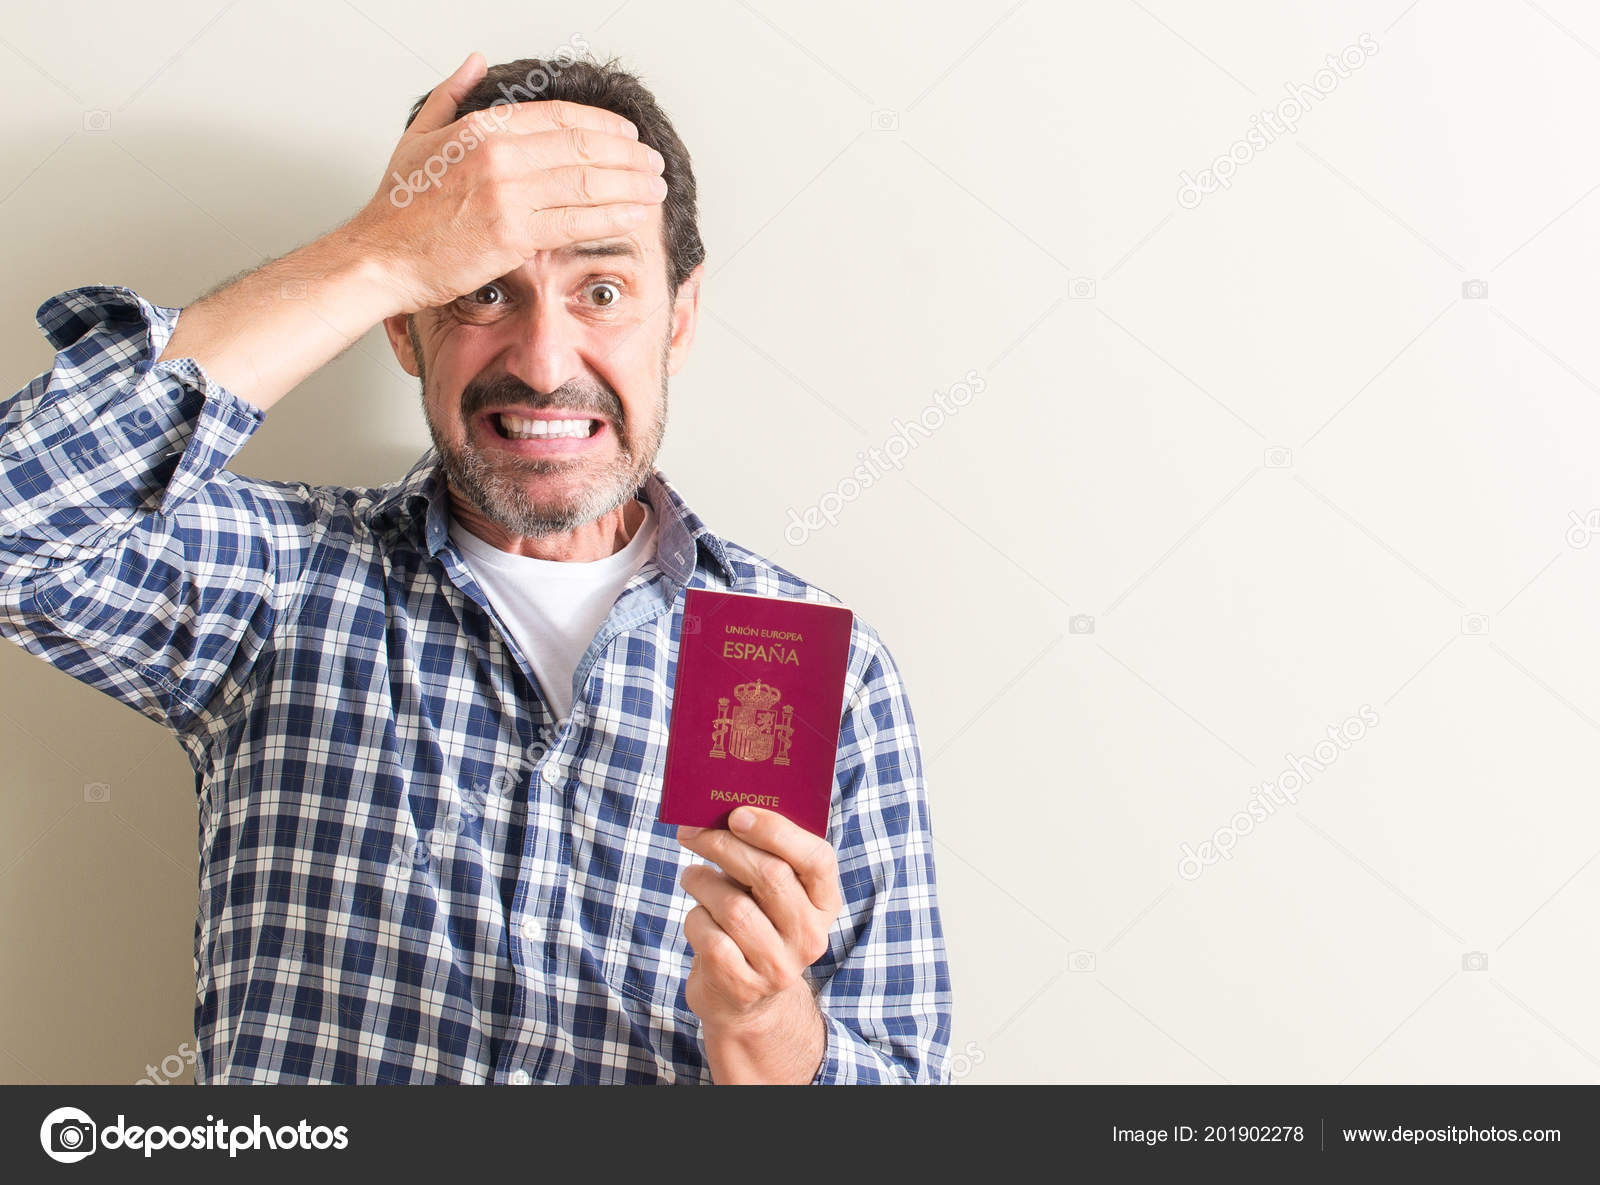 Photos pictures of passport 20190